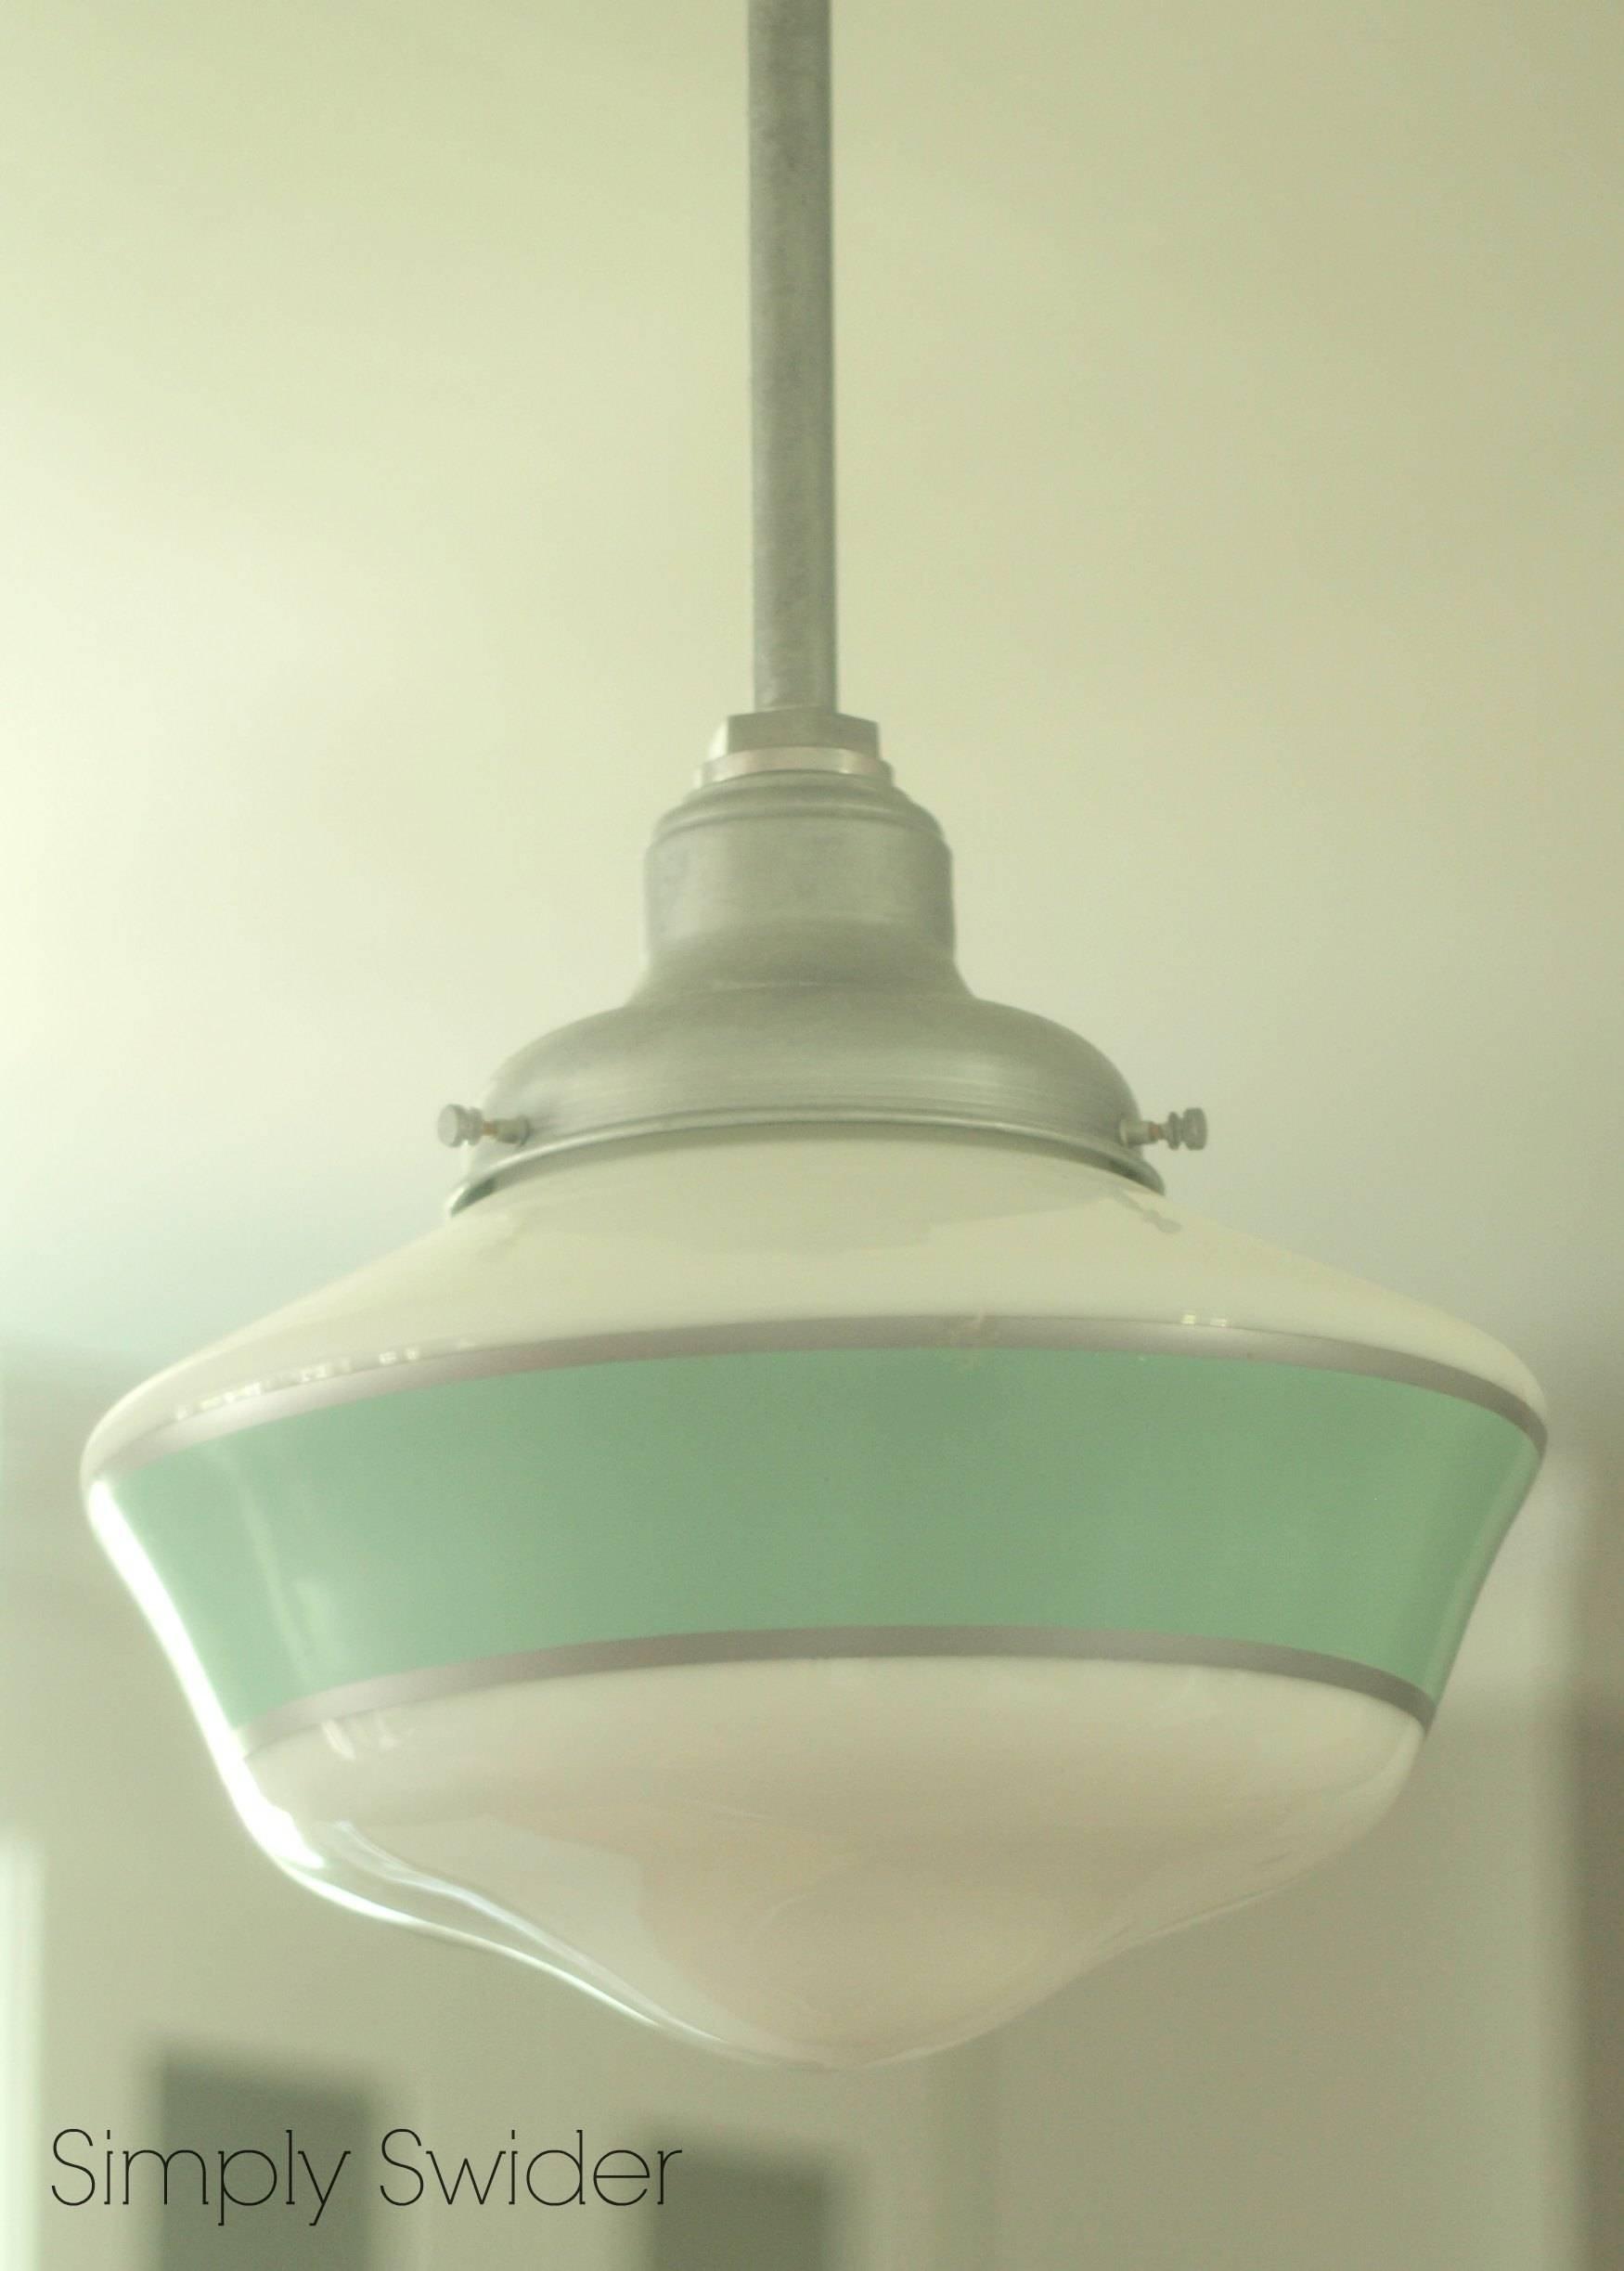 Schoolhouse Pendant Light For Kitchen Island | Simply Swider in Schoolhouse Pendant Lighting (Image 14 of 15)